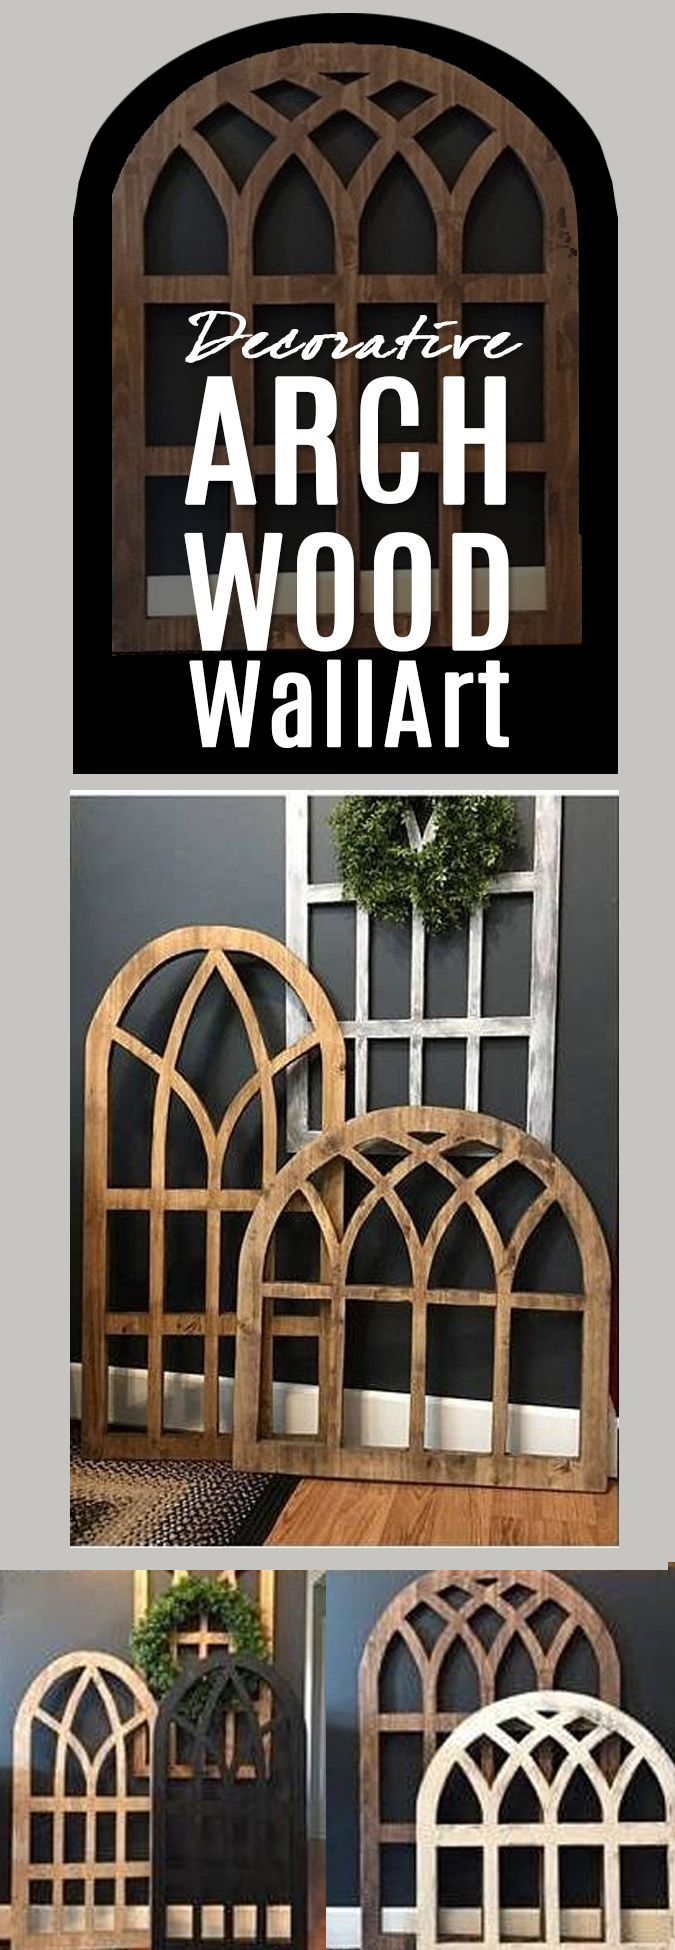 I love look of arched windows, reminiscent of of church stained glass windows, so I love these handmade from maple lumber. They add warmth and a sweet vintage feel to the home decor.   #Farmhouse #homedecor #wallart #handmade #etsy #ad